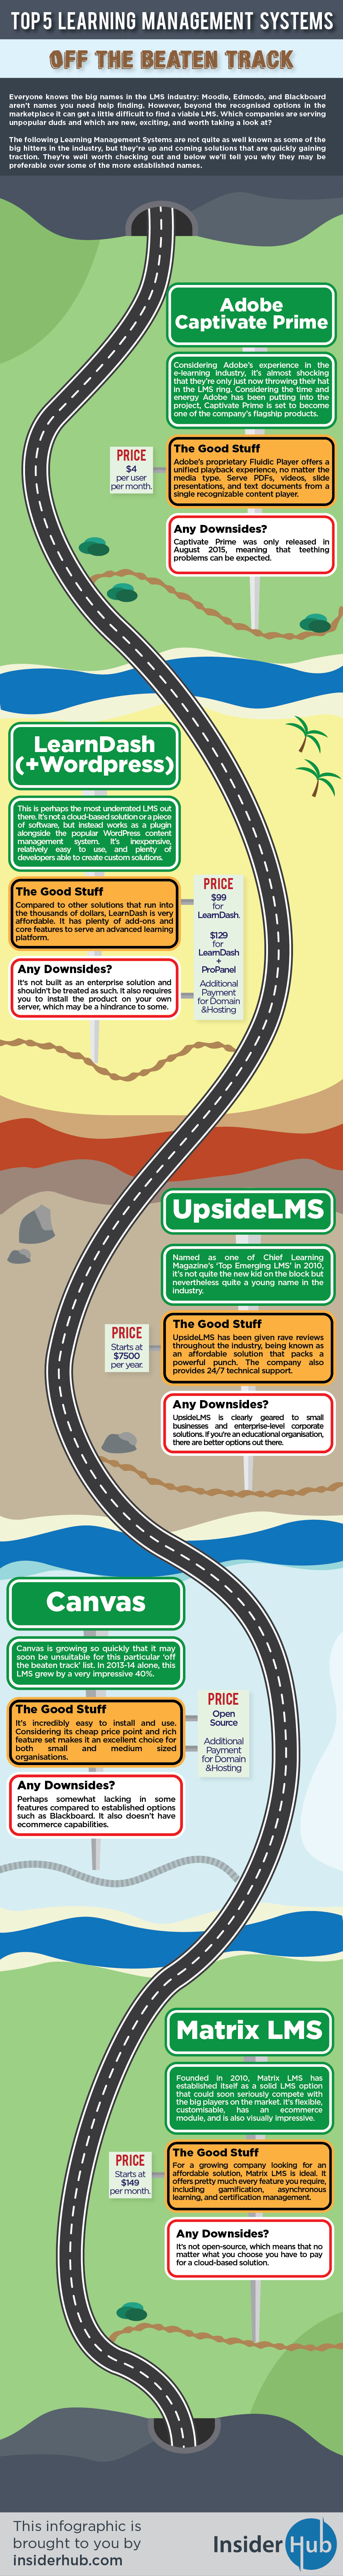 Top 5 LMS Off Beaten Track Infographic